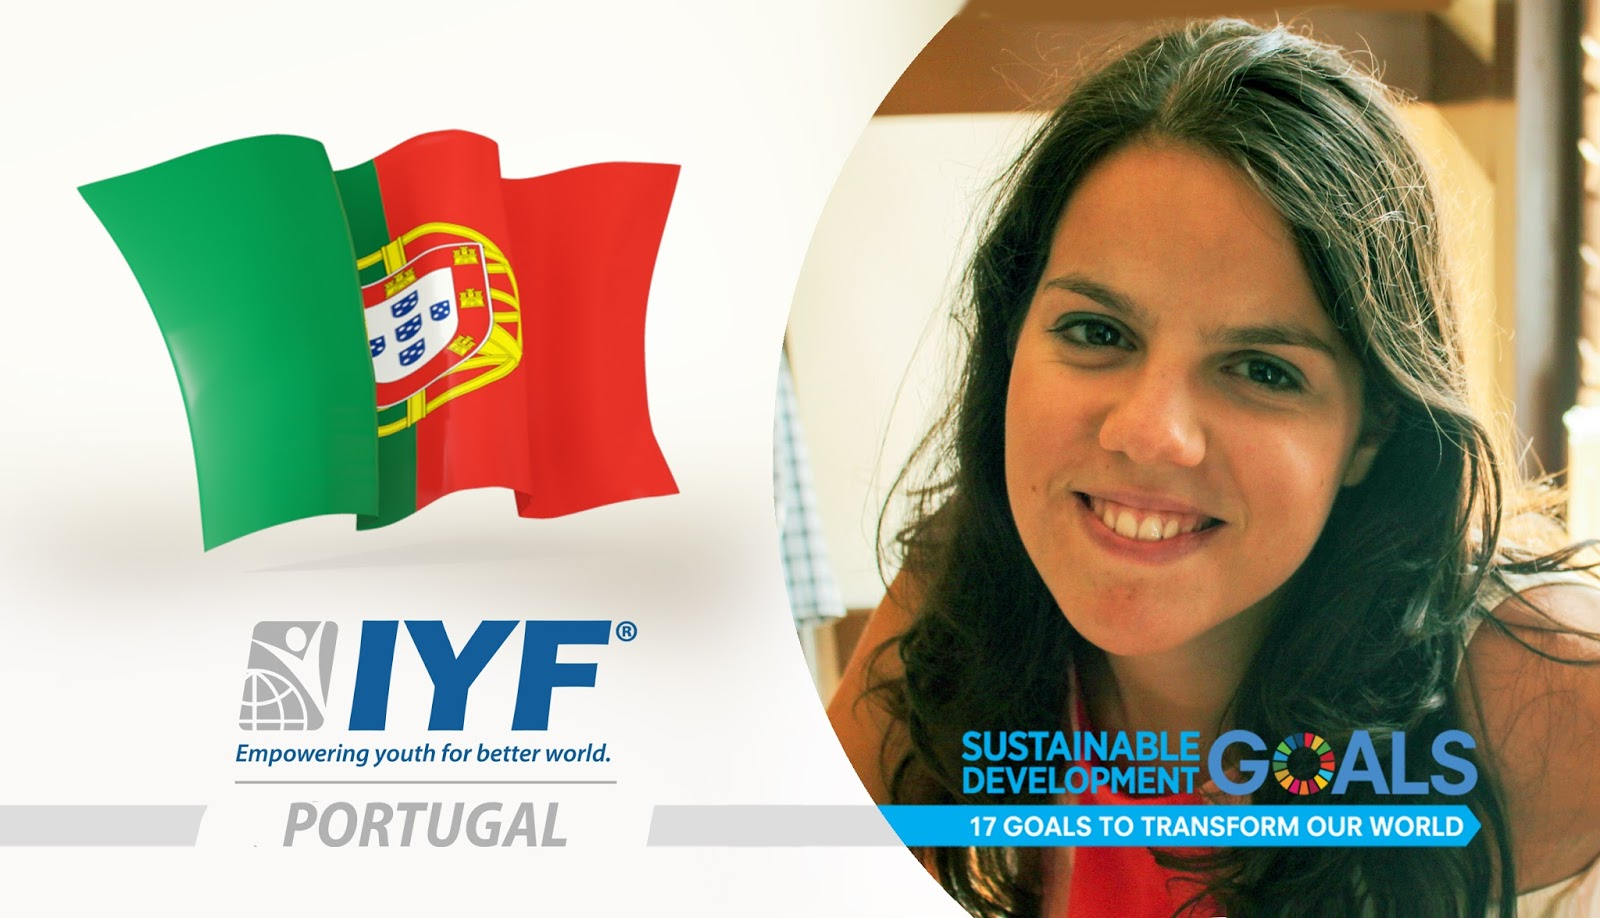 Mariana Catarino, IYF Representative in Portugal